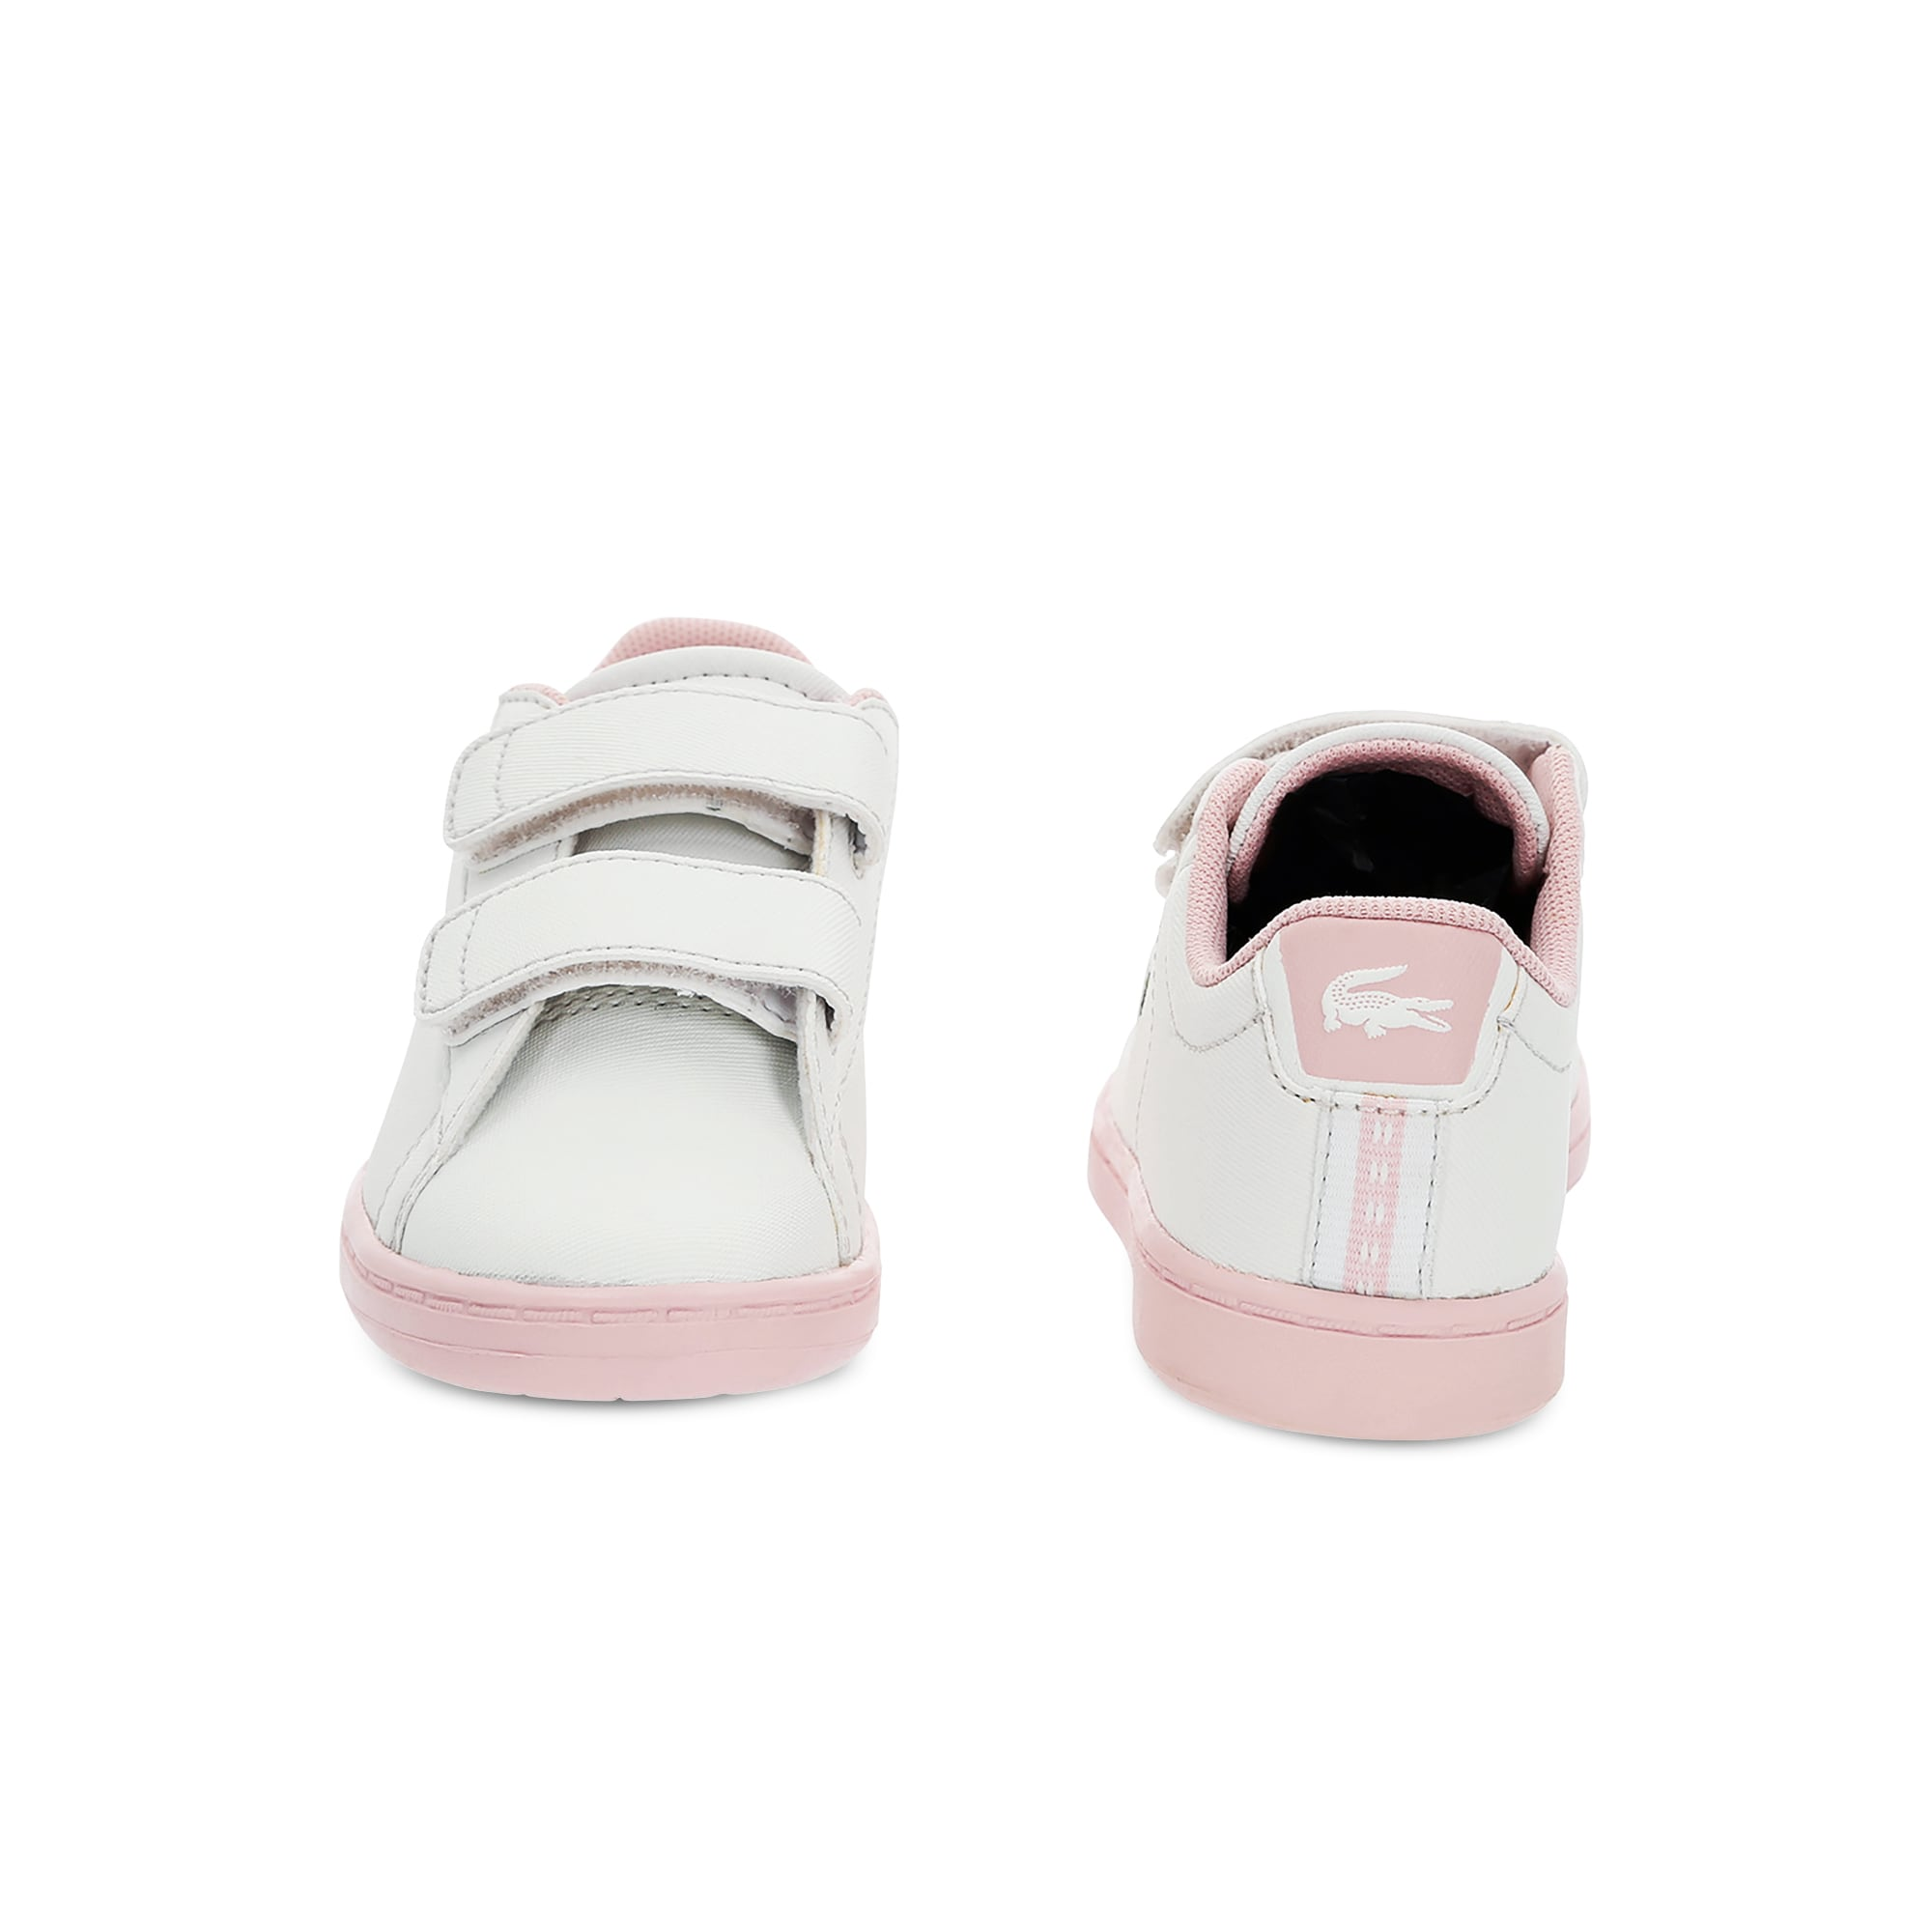 9a933edbe0 Infants' Carnaby Evo Strap Synthetic Trainers | LACOSTE